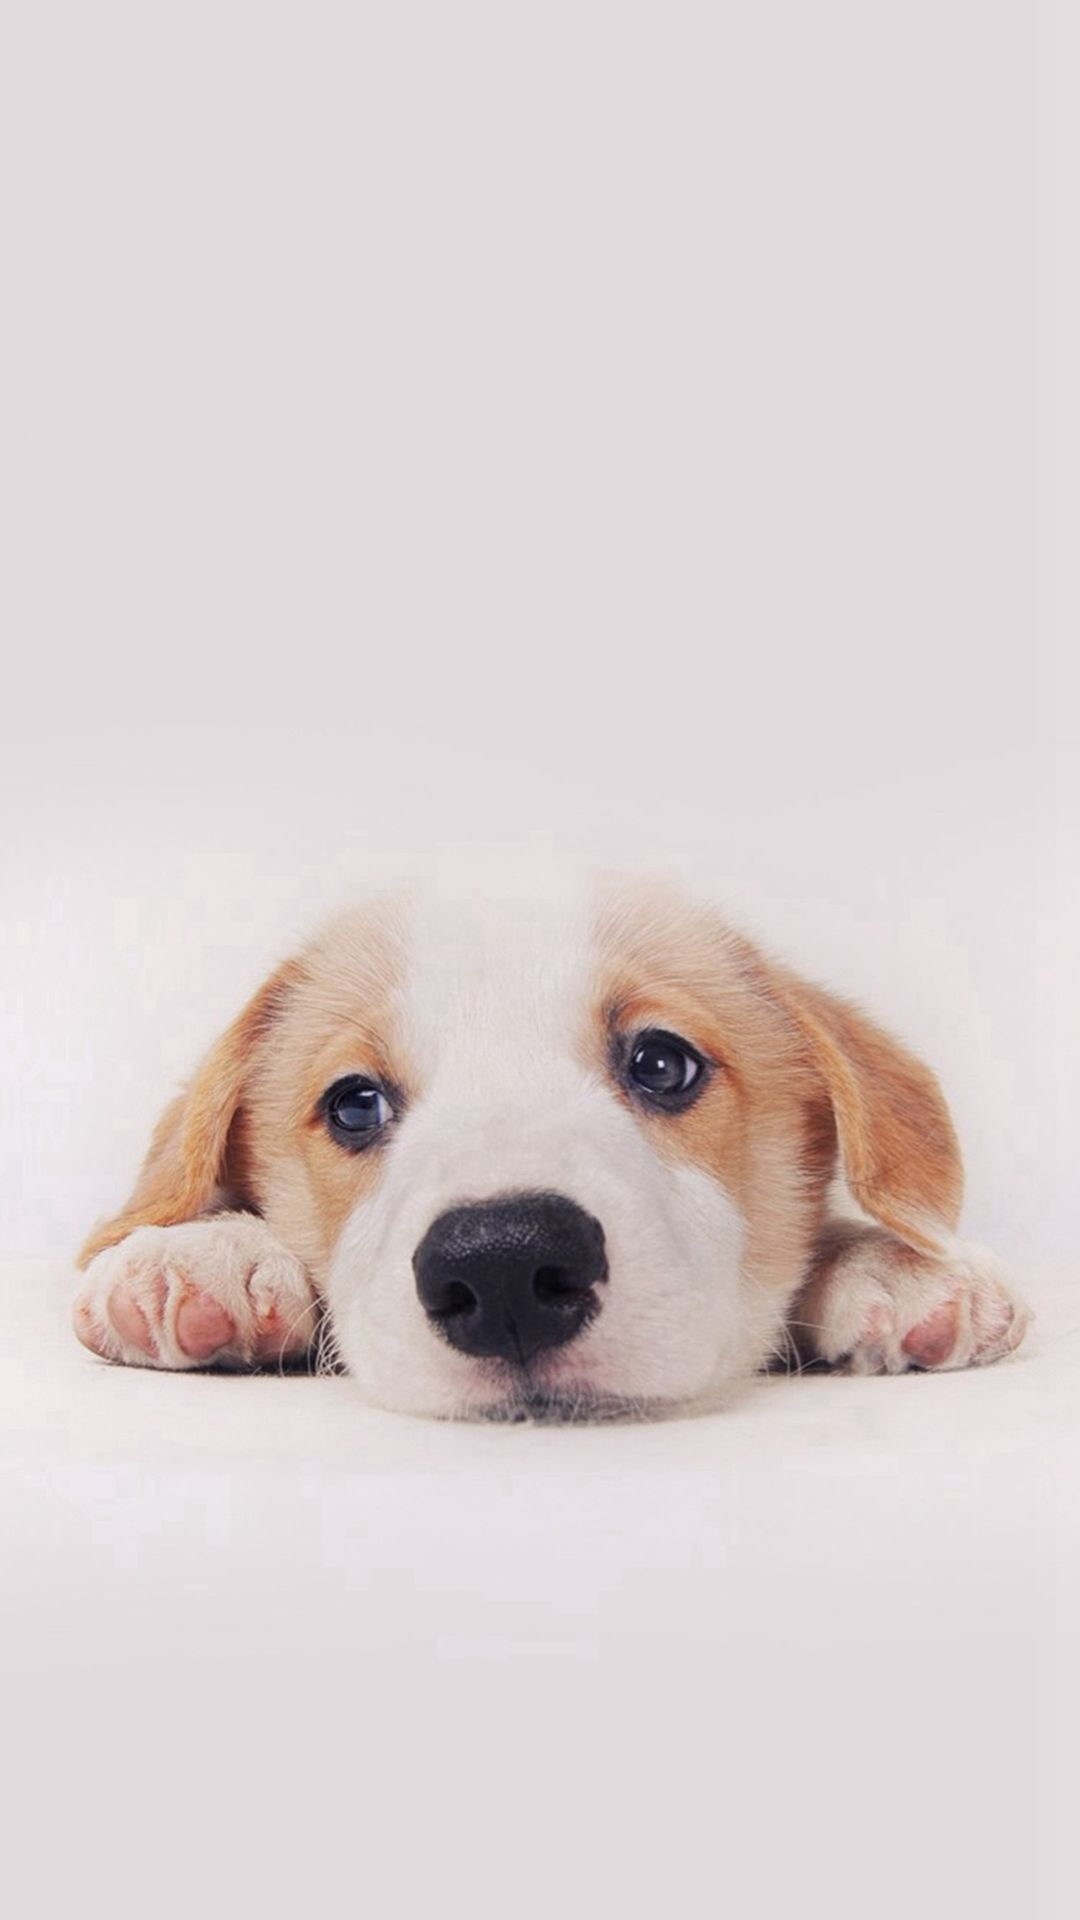 Cute Puppy Dog Pet Iphone 6 Plus Wallpaper Iphone 6 HD Wallpapers Download Free Images Wallpaper [1000image.com]